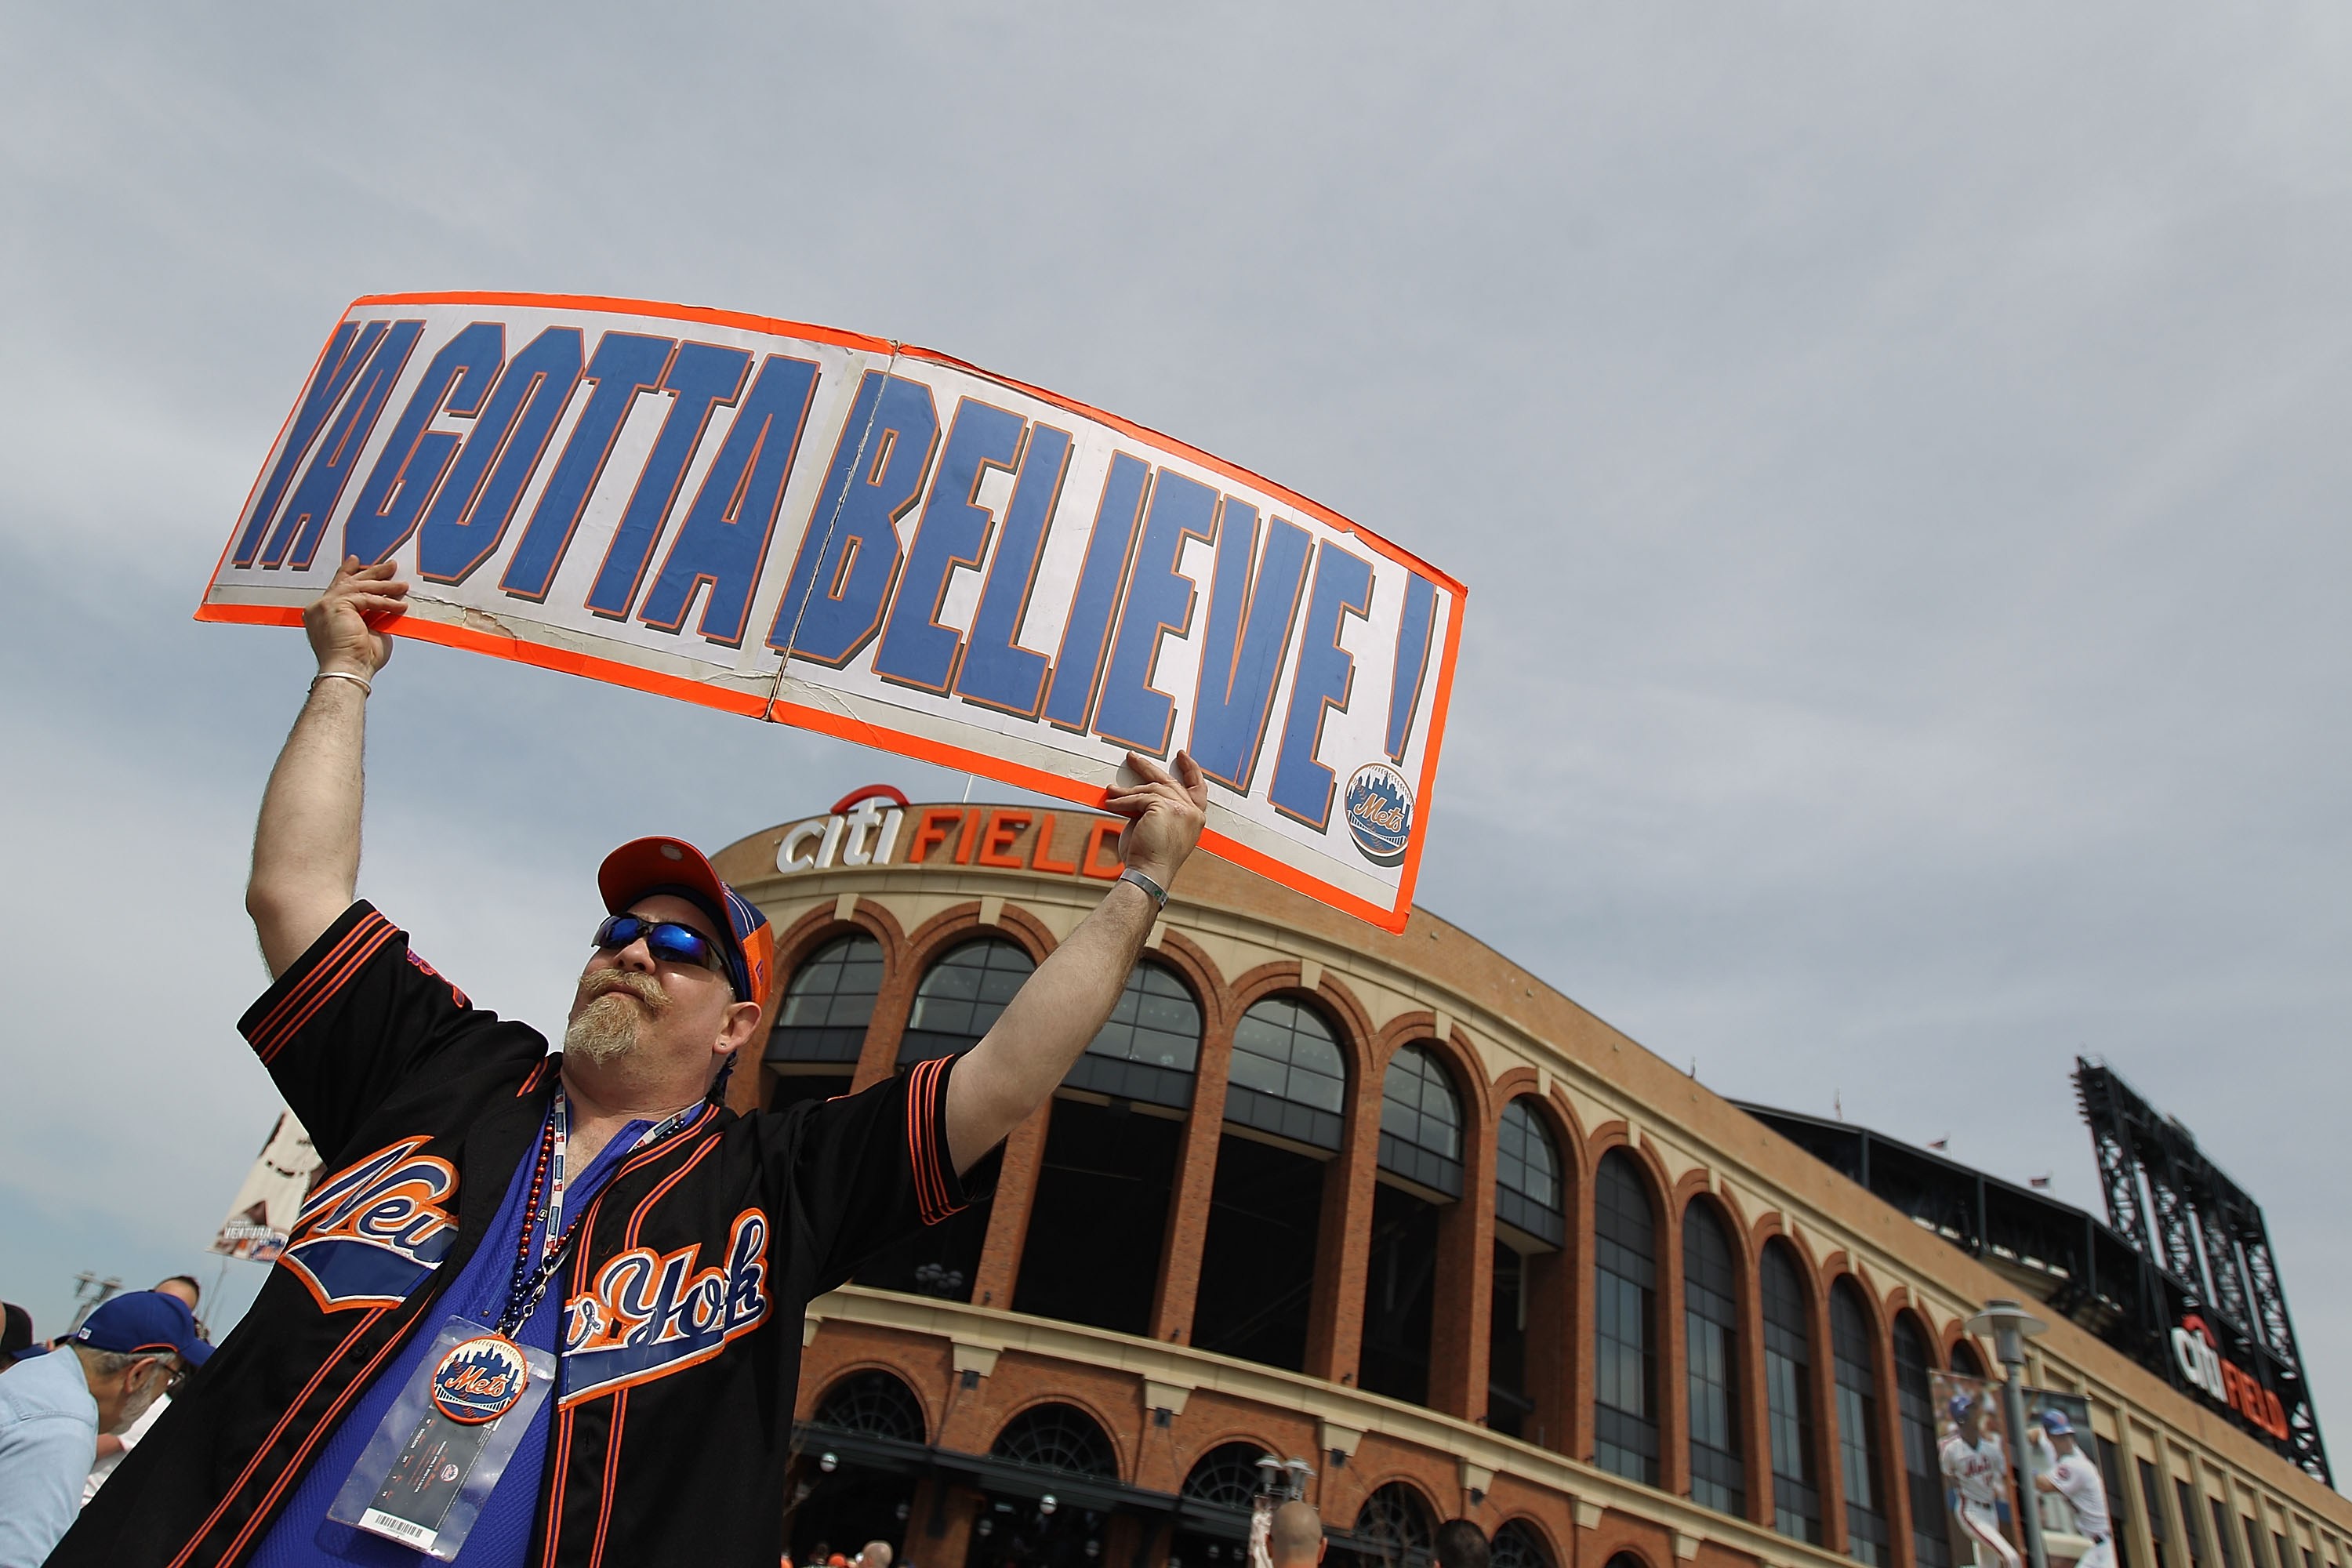 NEW YORK - APRIL 05:  Fans outside the stadium prior to the Opening Day Game between the New York Mets and the Florida Marlins at Citi Field on April 5, 2010 in the Flushing neighborhood of the Queens borough of New York City.  (Photo by Nick Laham/Getty